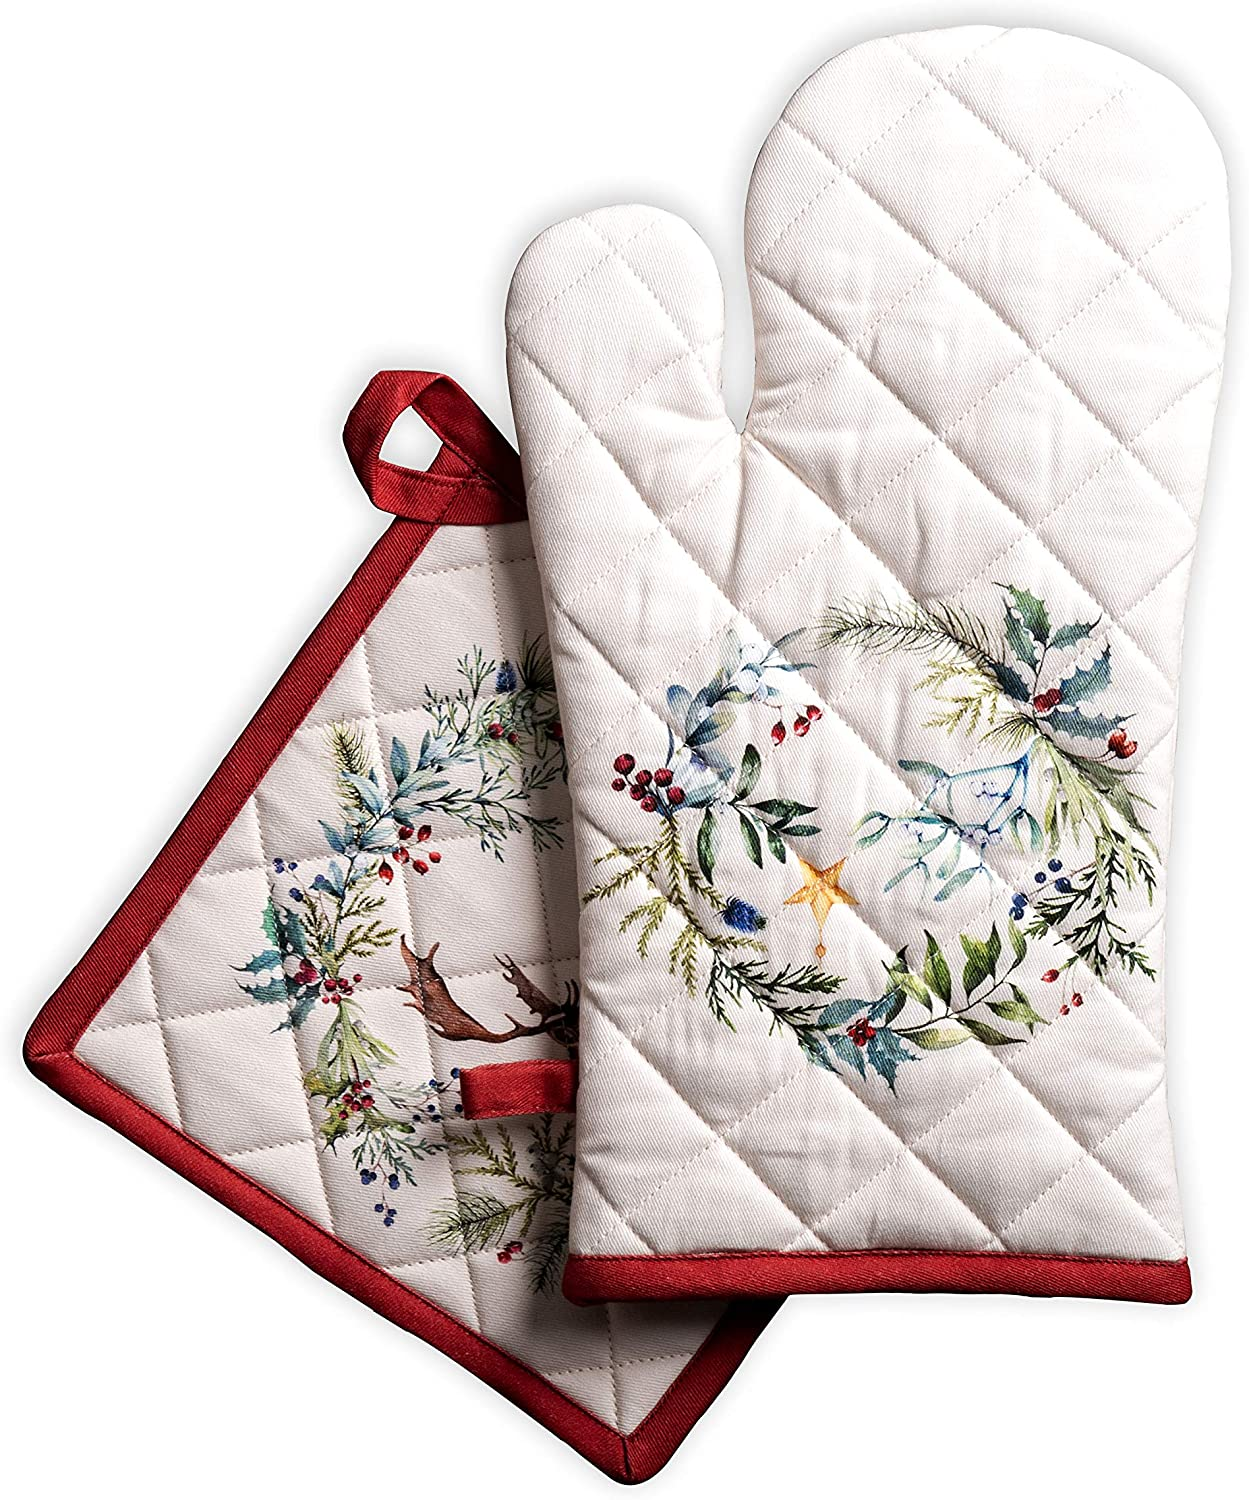 Maison d' Hermine Holly Time 100% Cotton Set of Oven Mitt (7.5 Inch by 13 Inch) and Pot Holder (8 Inch by 8 Inch). Perfect for Thanksgiving and Christmas